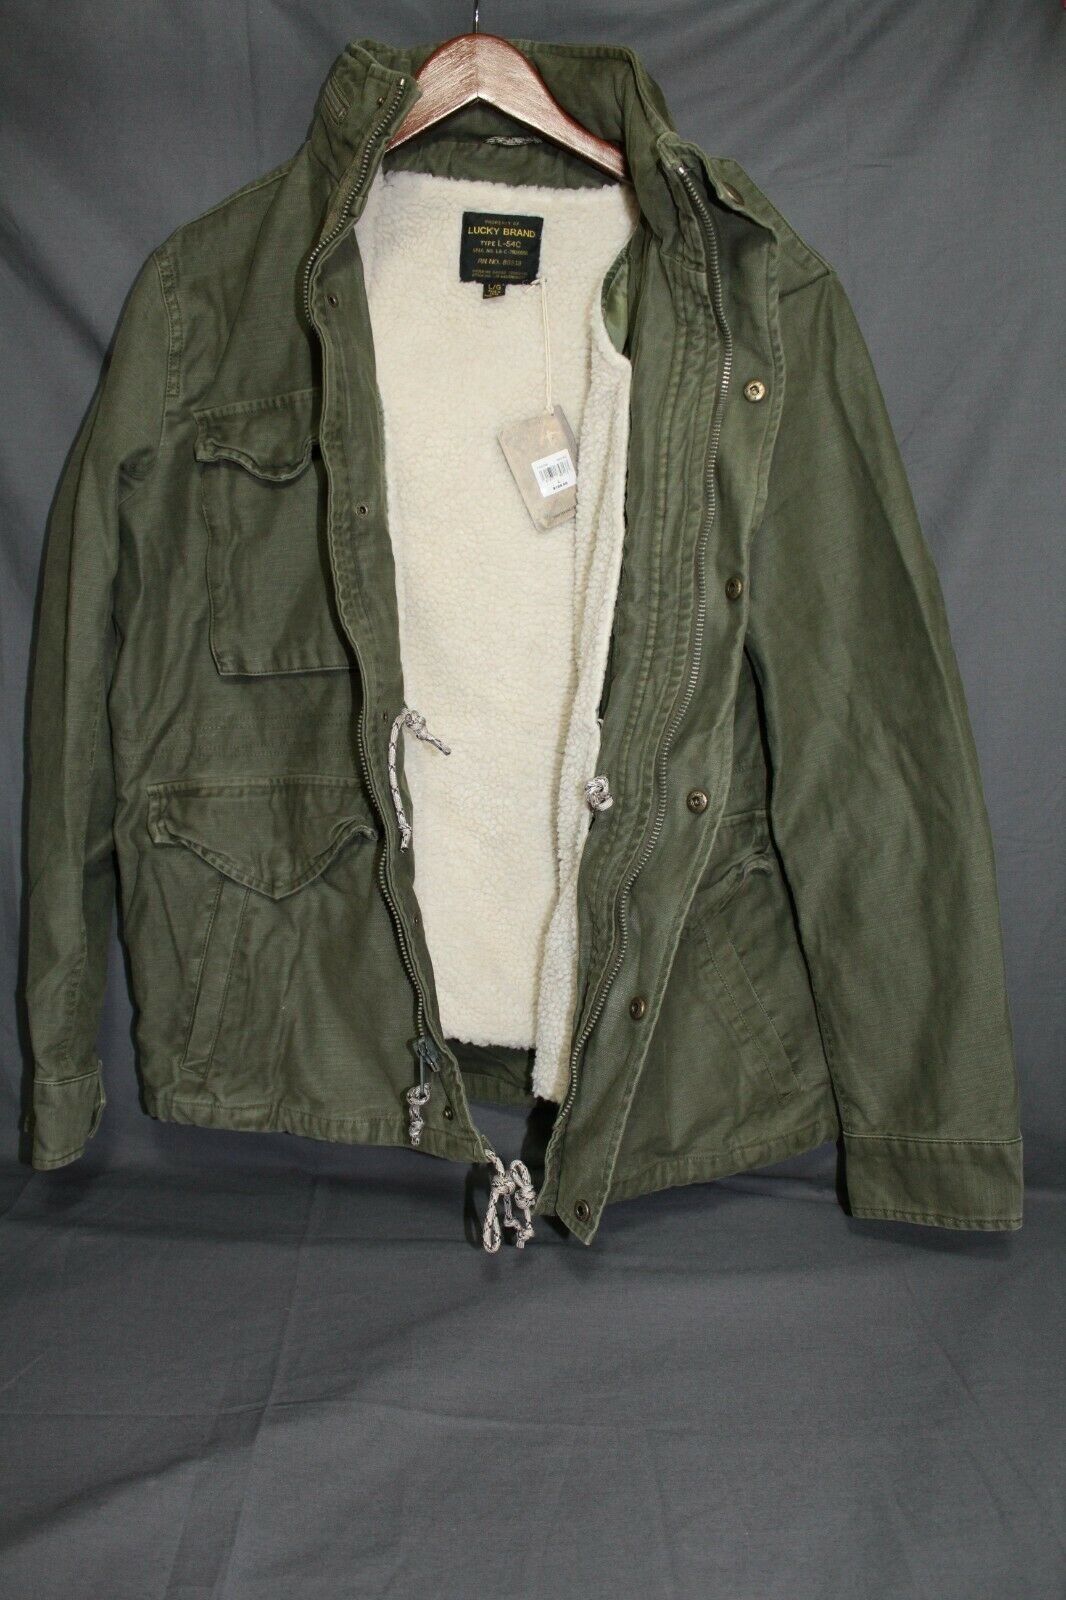 NEW Men's LUCKY BRAND Military Field Jacket M-65 Removable Sherpa Olive LRG $189